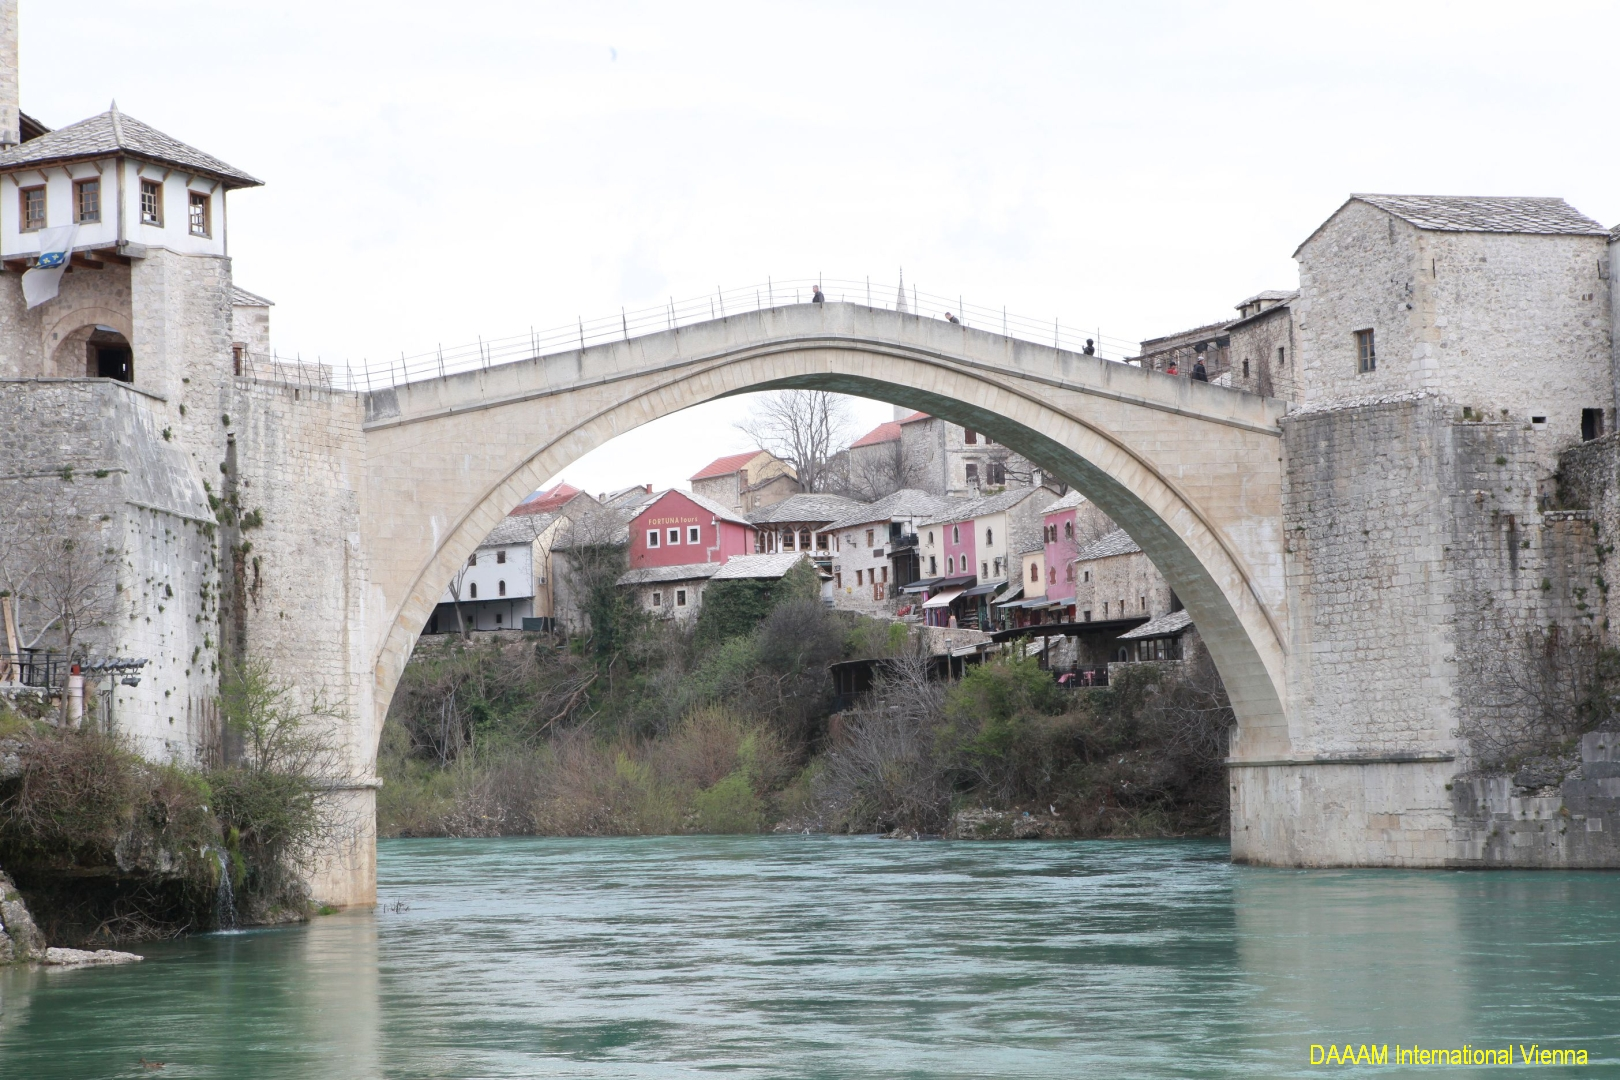 DAAAM_2016_Mostar_01_Magic_City_of_Mostar_060